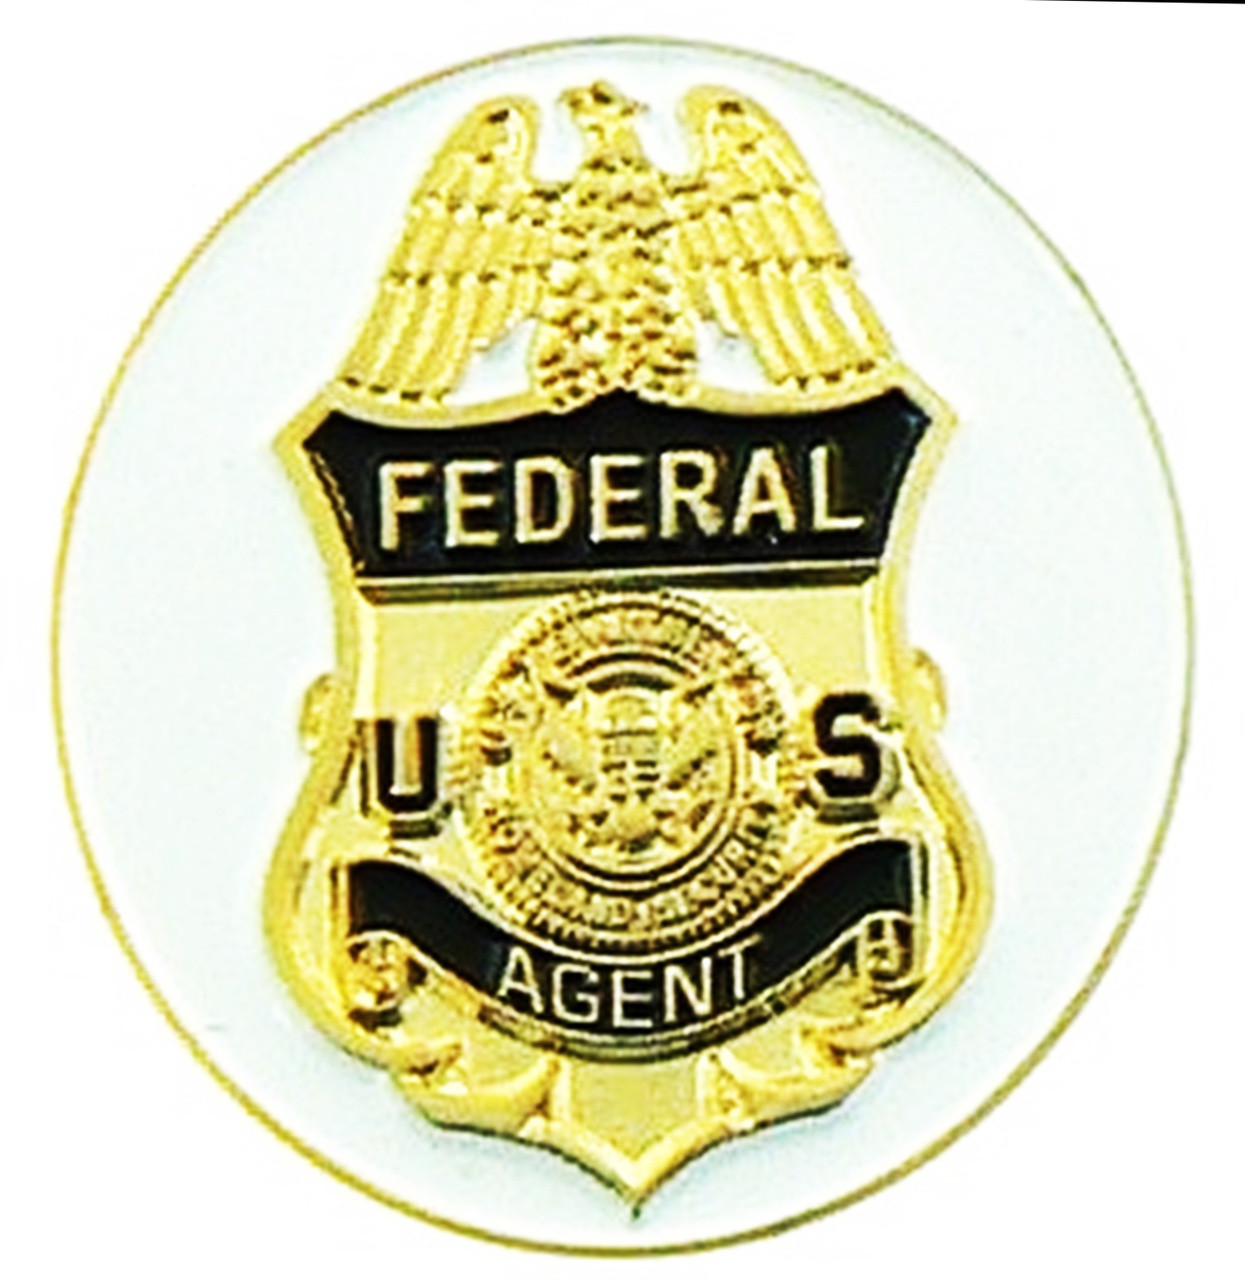 ICE Federal Agent Golf Ball Marker